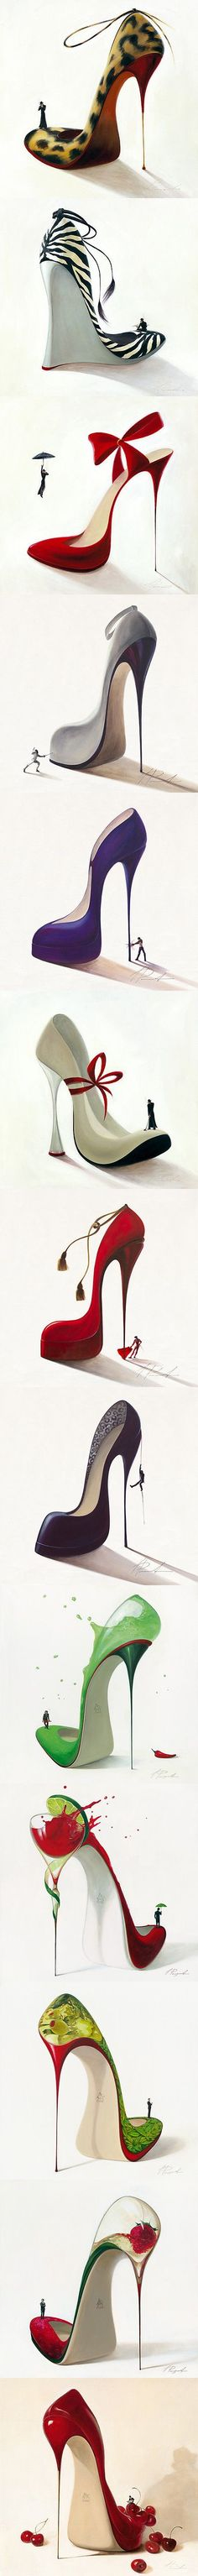 All the beautiful shoe illustrations by Inna Panasenko.: